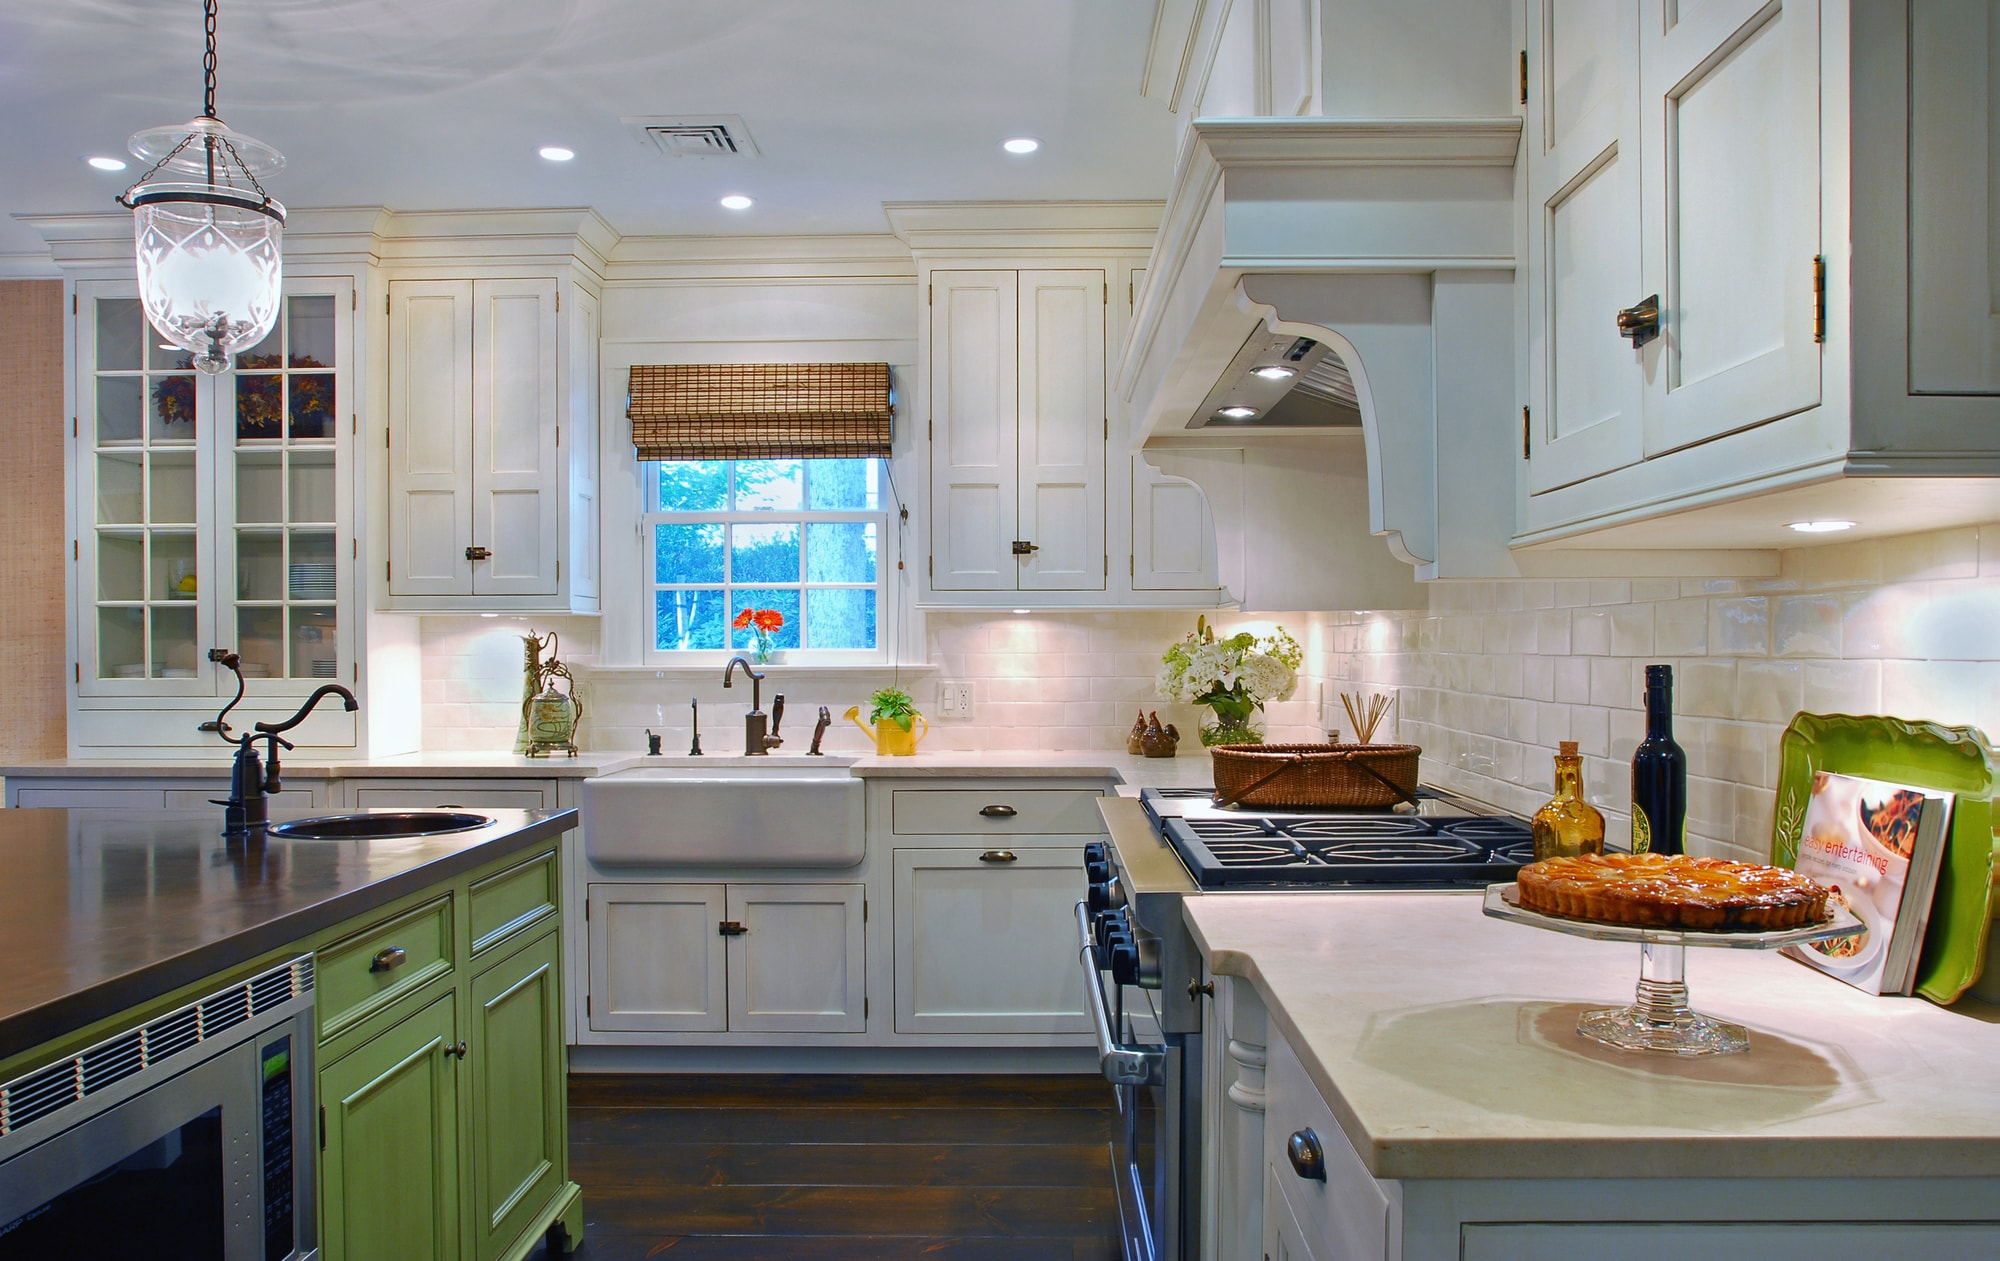 Traditional style kitchen with classic hardwood flooring